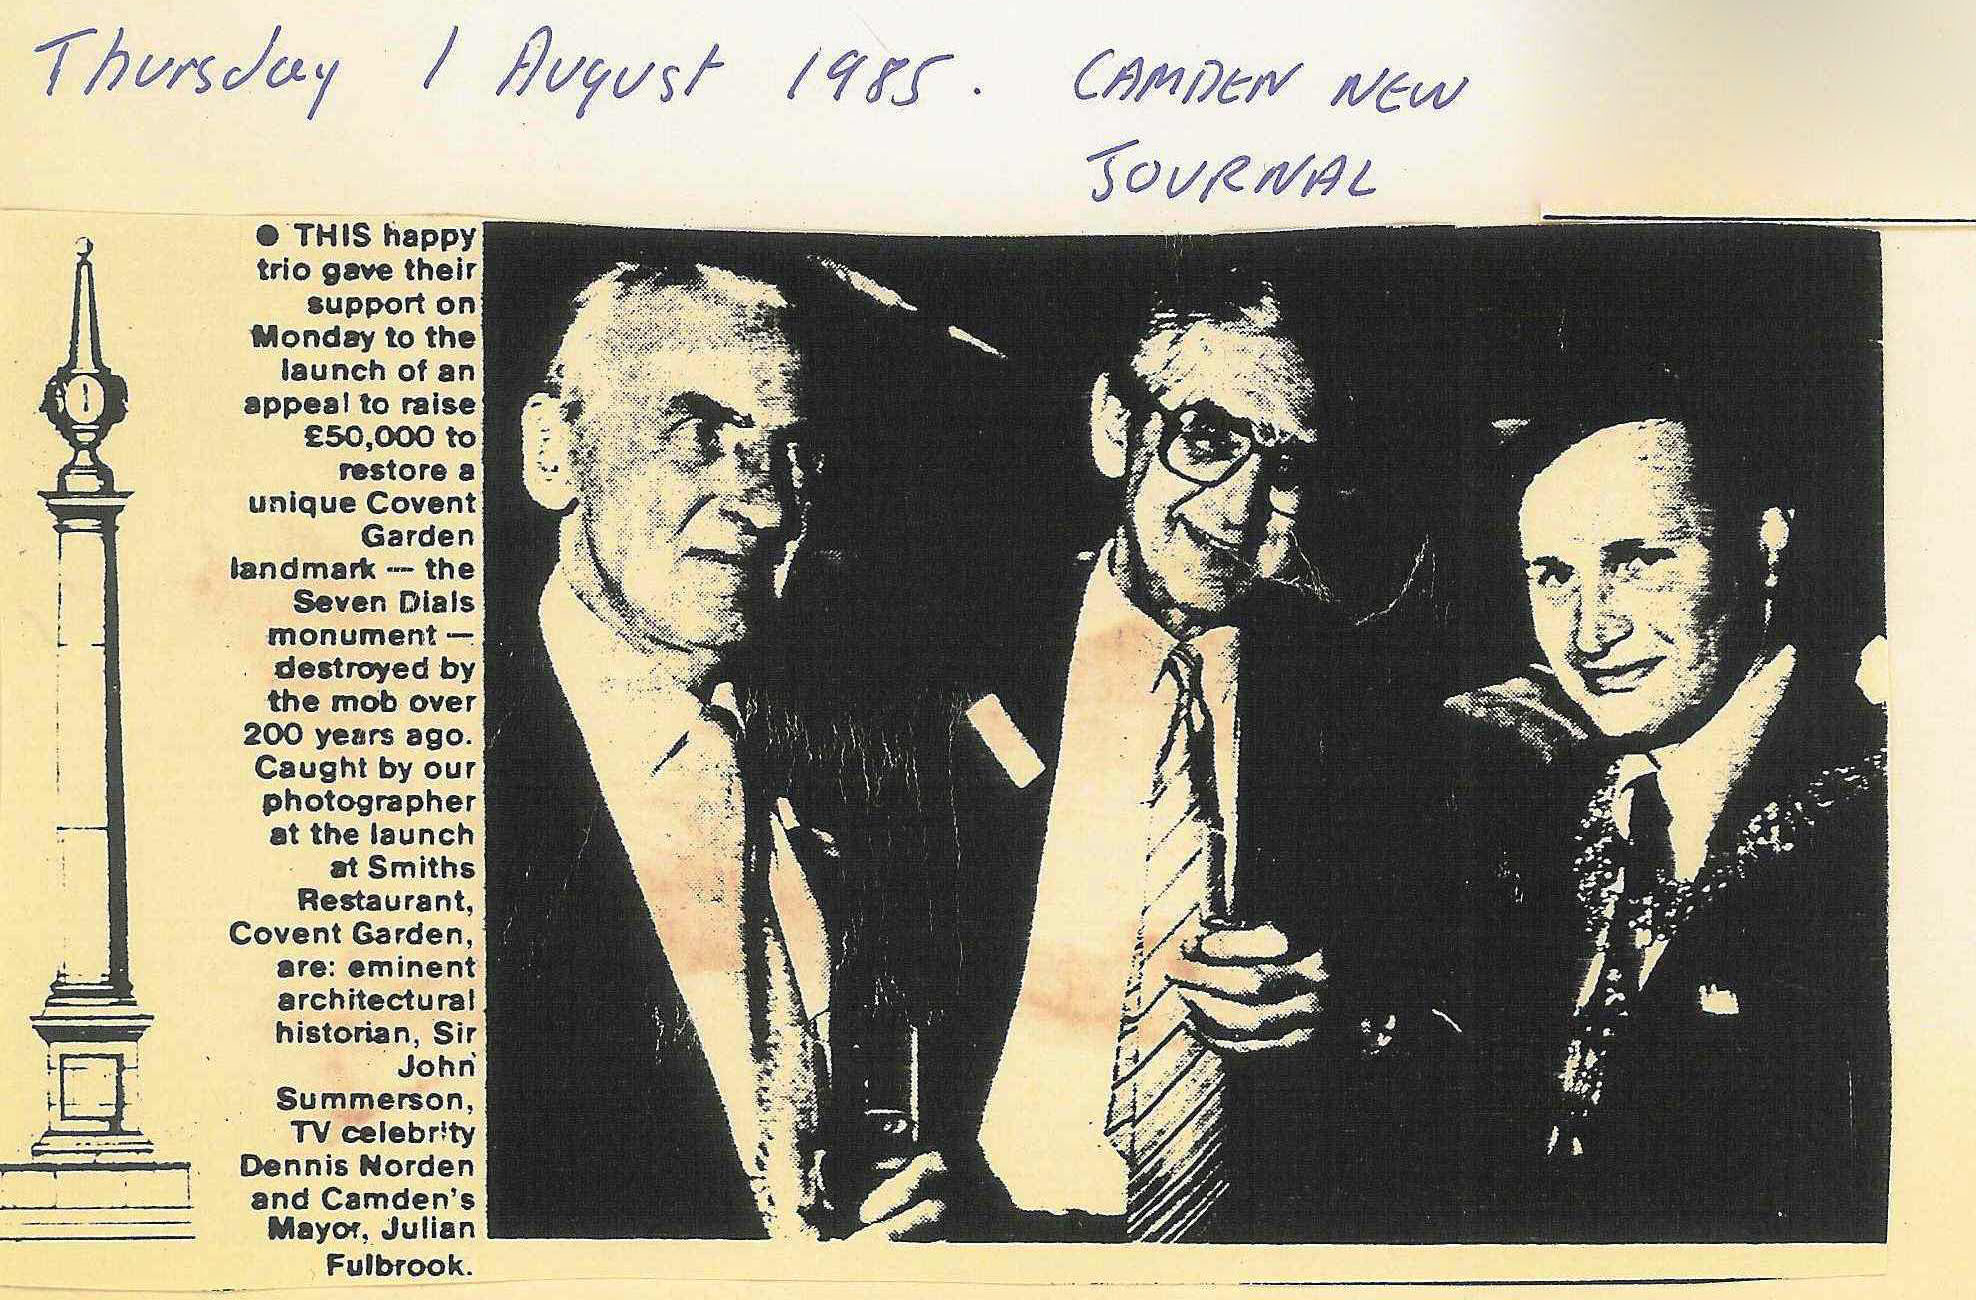 01 Aug. 1985 – Camden New Journal: This happy trio gave their support.